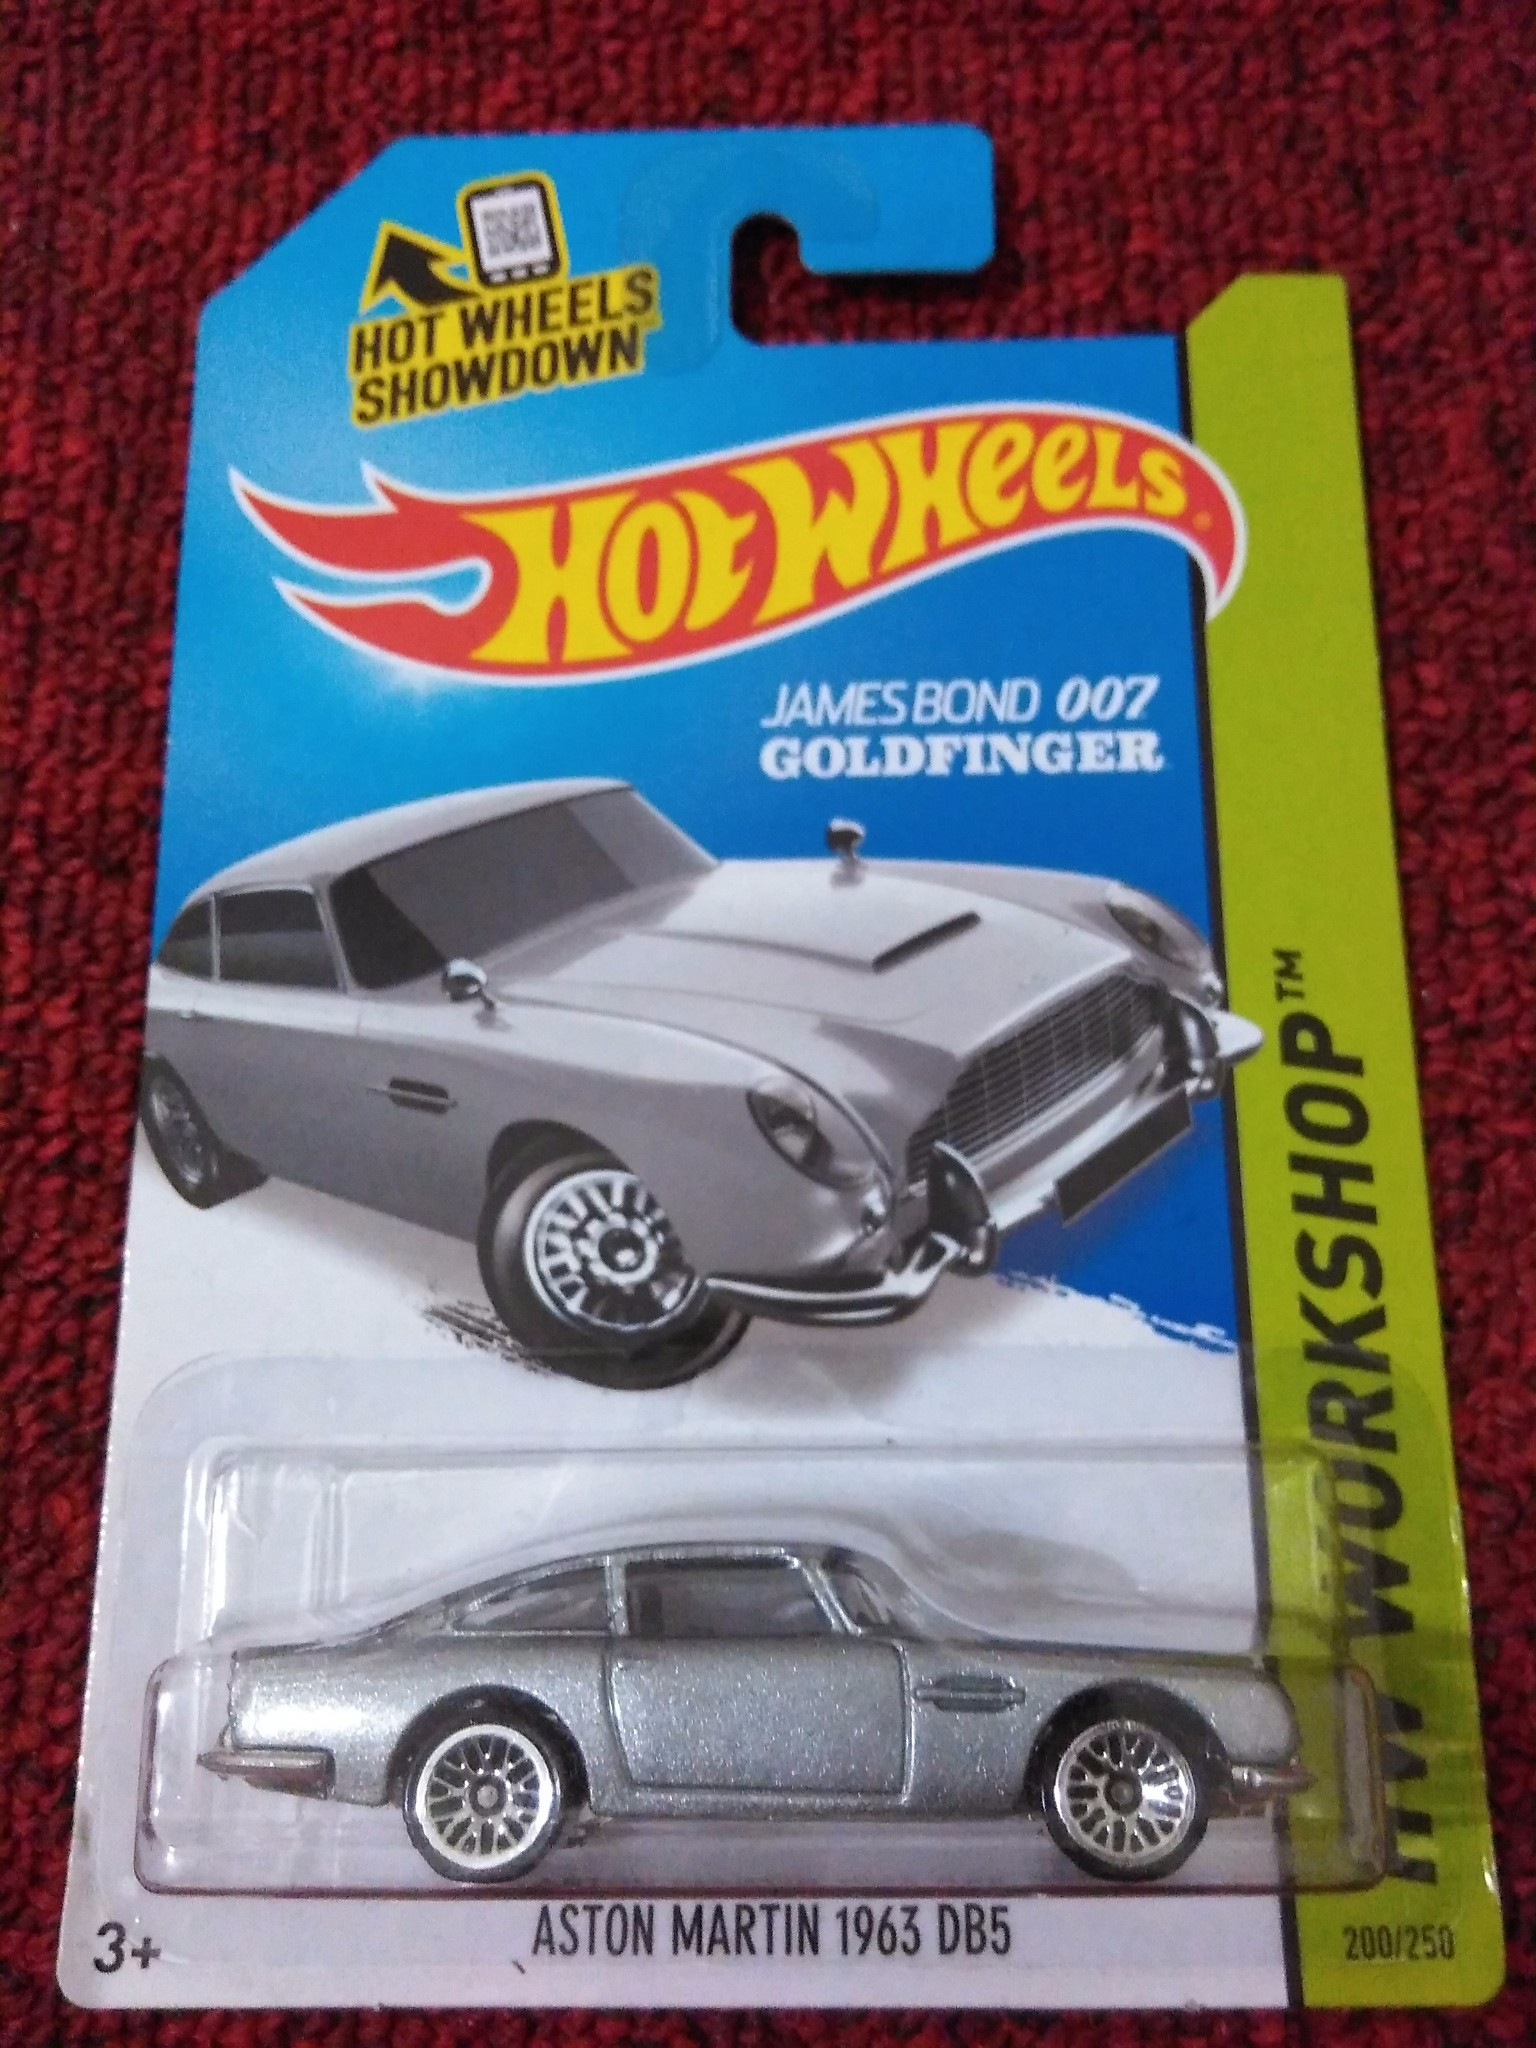 jual hot wheels aston martin 1963 db5 - james bond 007 - alvaro